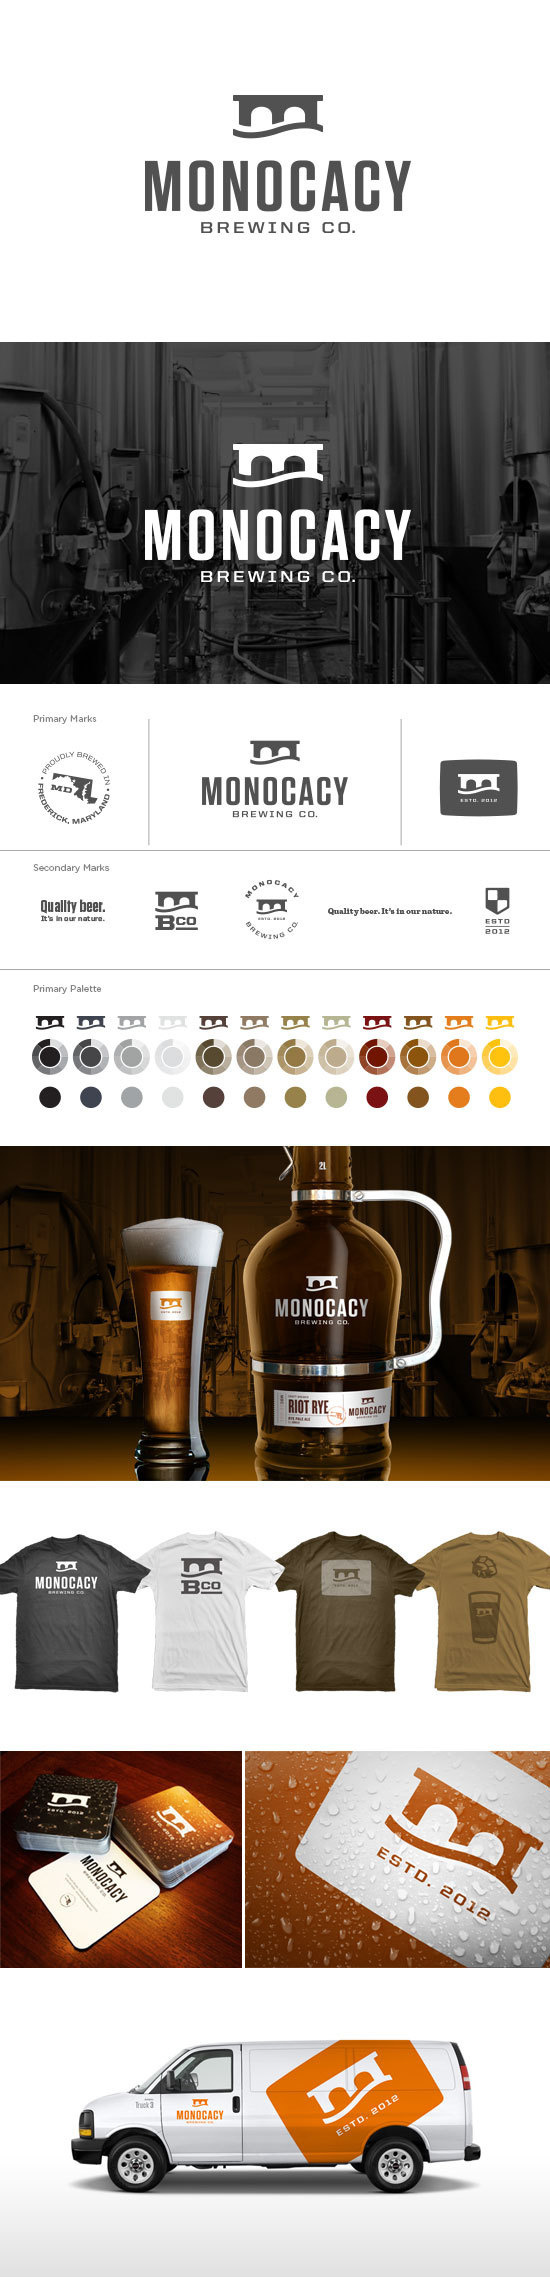 Monocacy Brewing Co. Branding #truck #logotype #beer #mark #beverage #brewery #branding #tshirts #color #tshirt #glass #logo